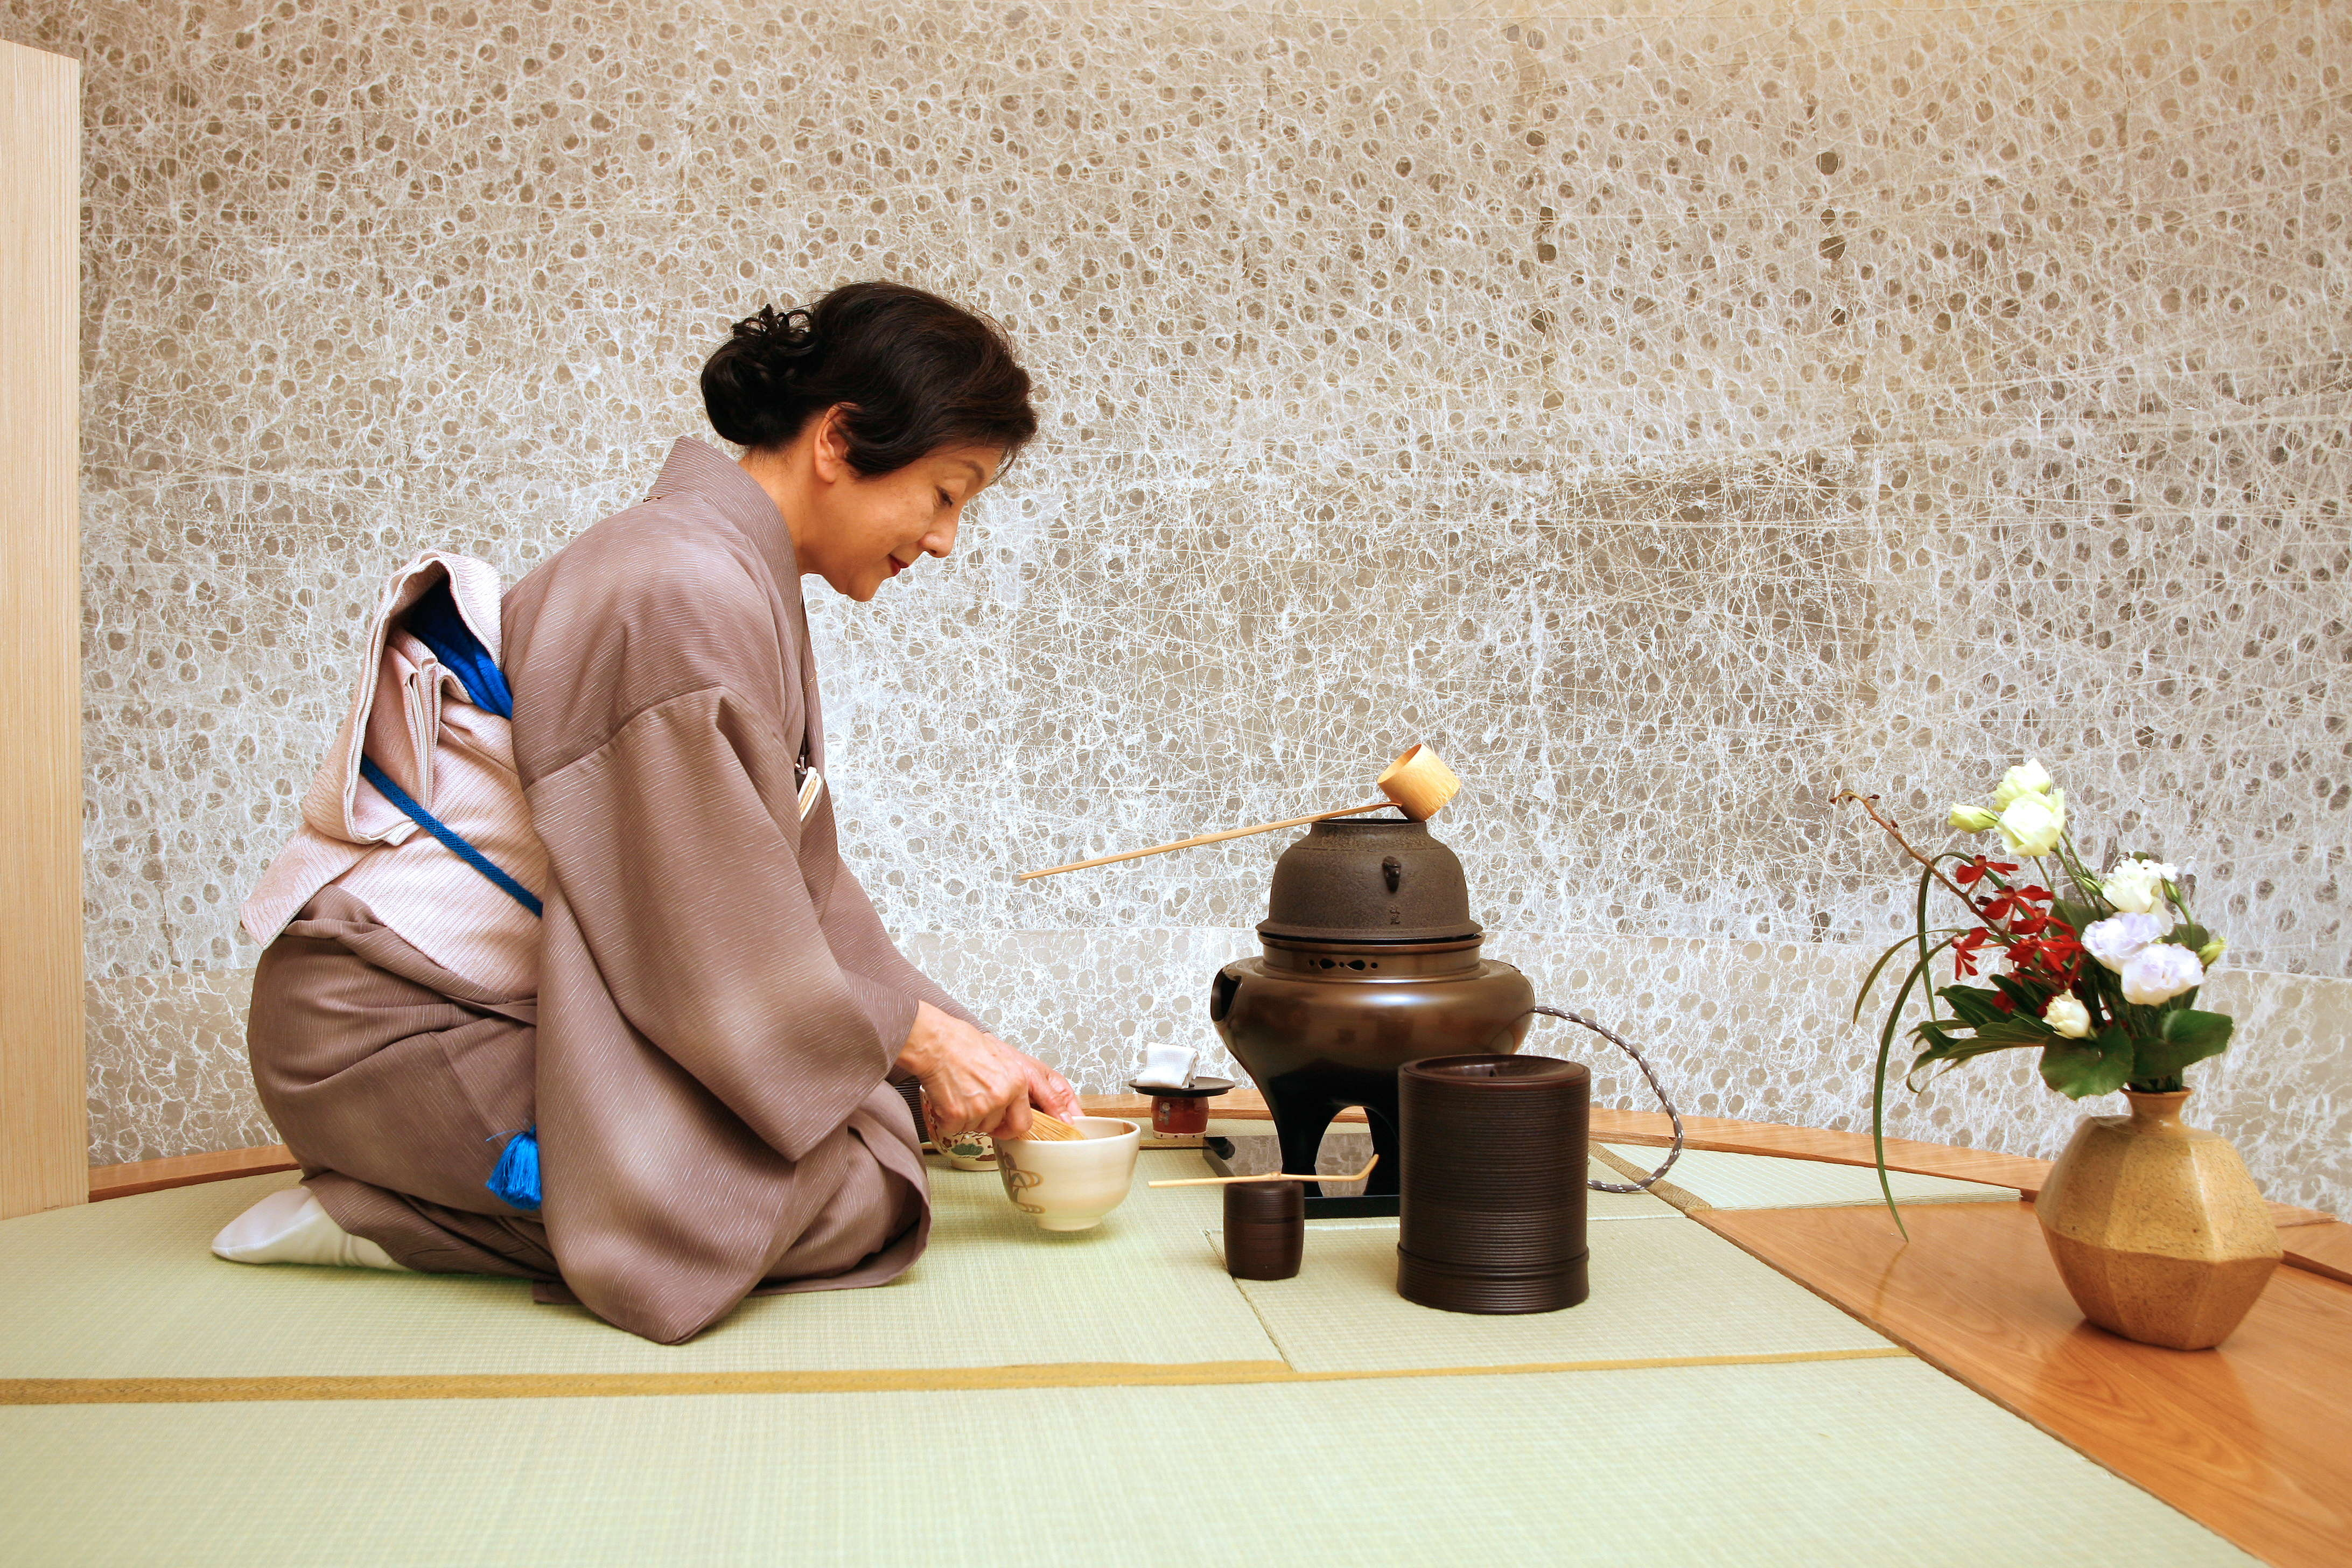 tea in japan essays on the history of chanoyu The japanese tea ceremony is called chanoyu or sado for the japanese it is basically a choreographic ritual of preparing and serving bitter tea, called the matcha, together with some sweet victuals to fight off the bitter taste of the tea each movement is predefined the whole process is not about drinking tea, but is about aesthetics.